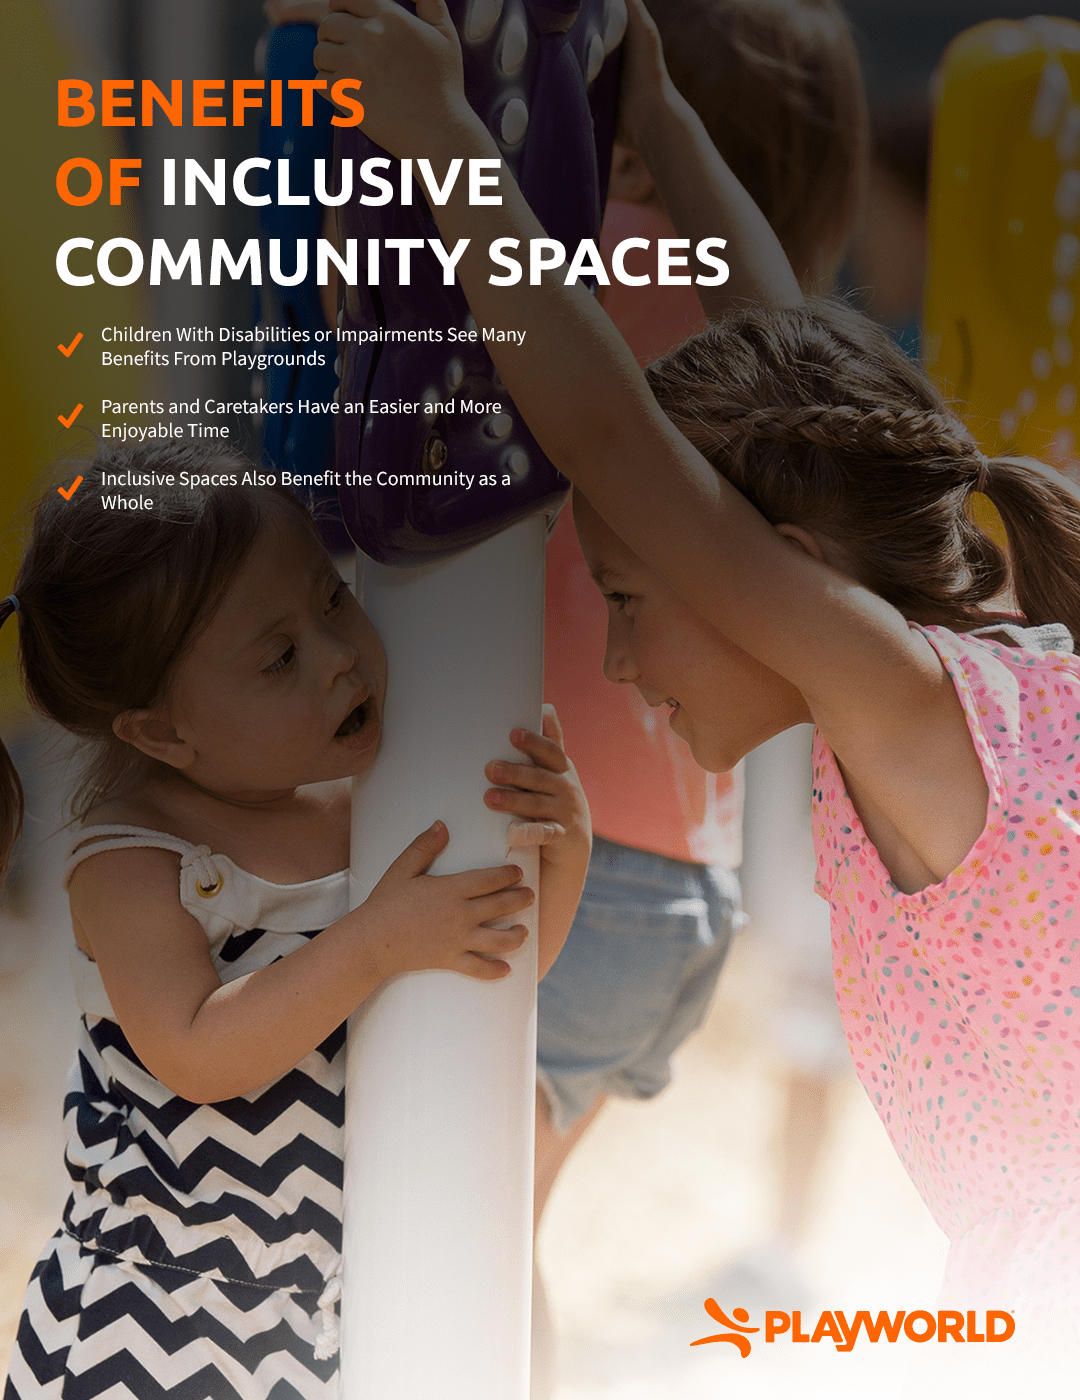 Benefits of Inclusive Community Spaces